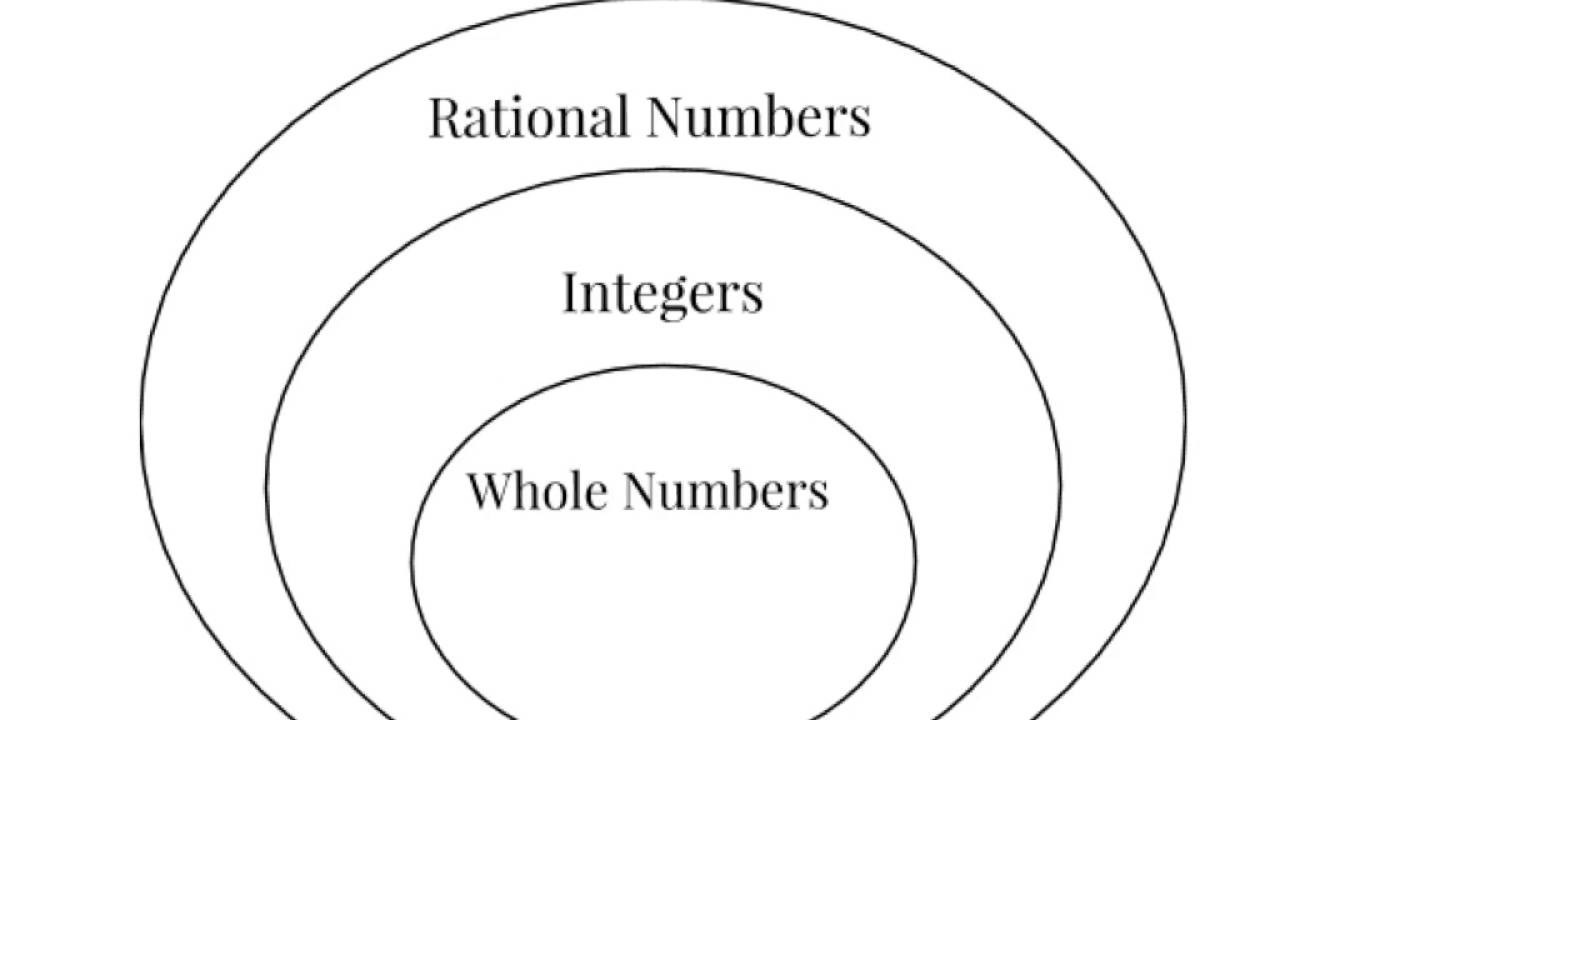 15 Points   Where Would You Place 1 2 On The Venn Diagram